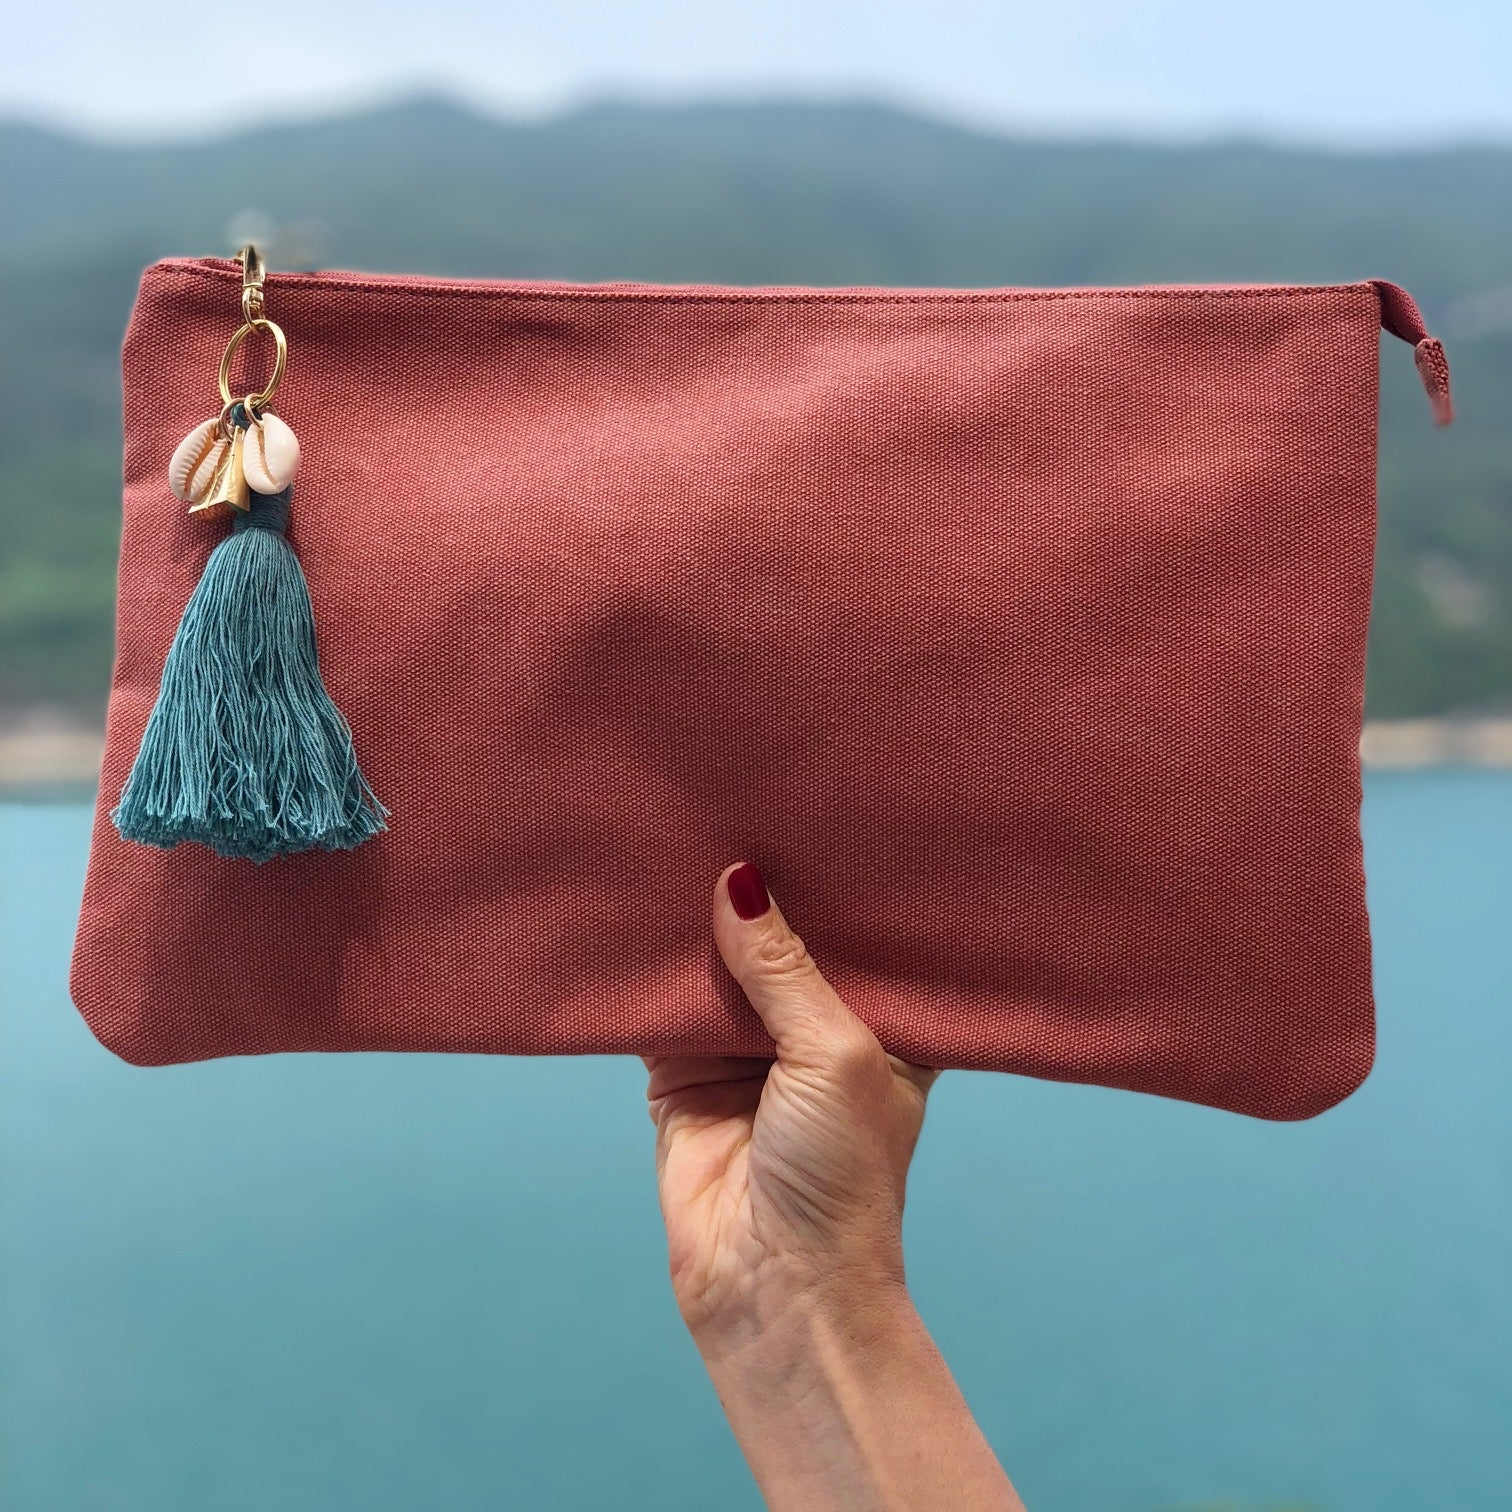 Island Vibes Tassel Clutch Bag - Coral Pink